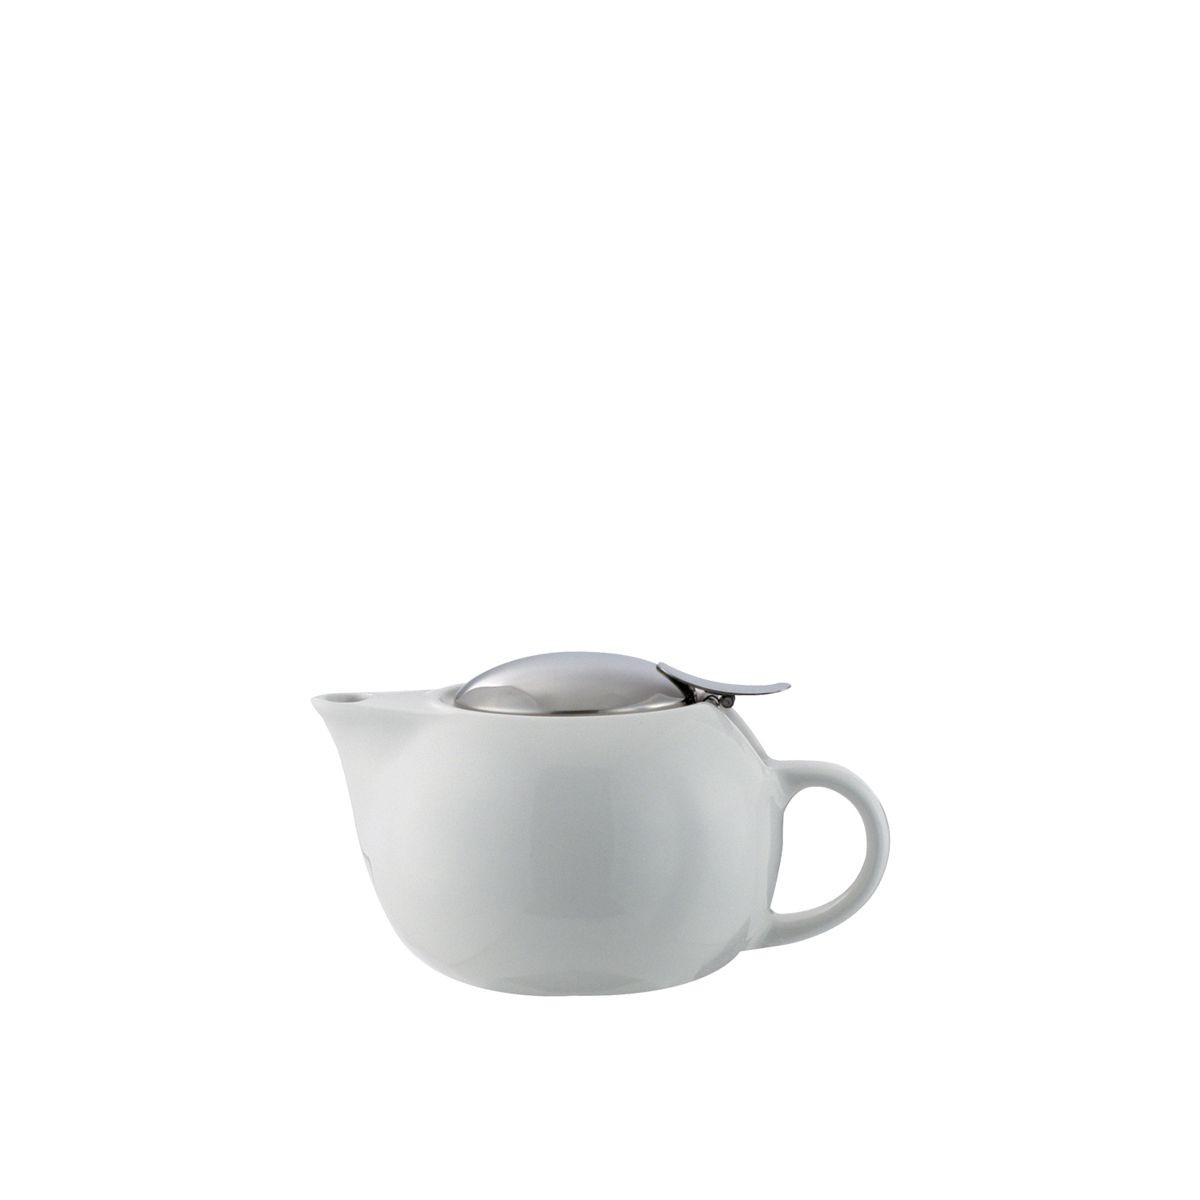 Service Ideas TPC10WH White Ceramic Teapot with Lid, Infuser Basket, 10 oz.